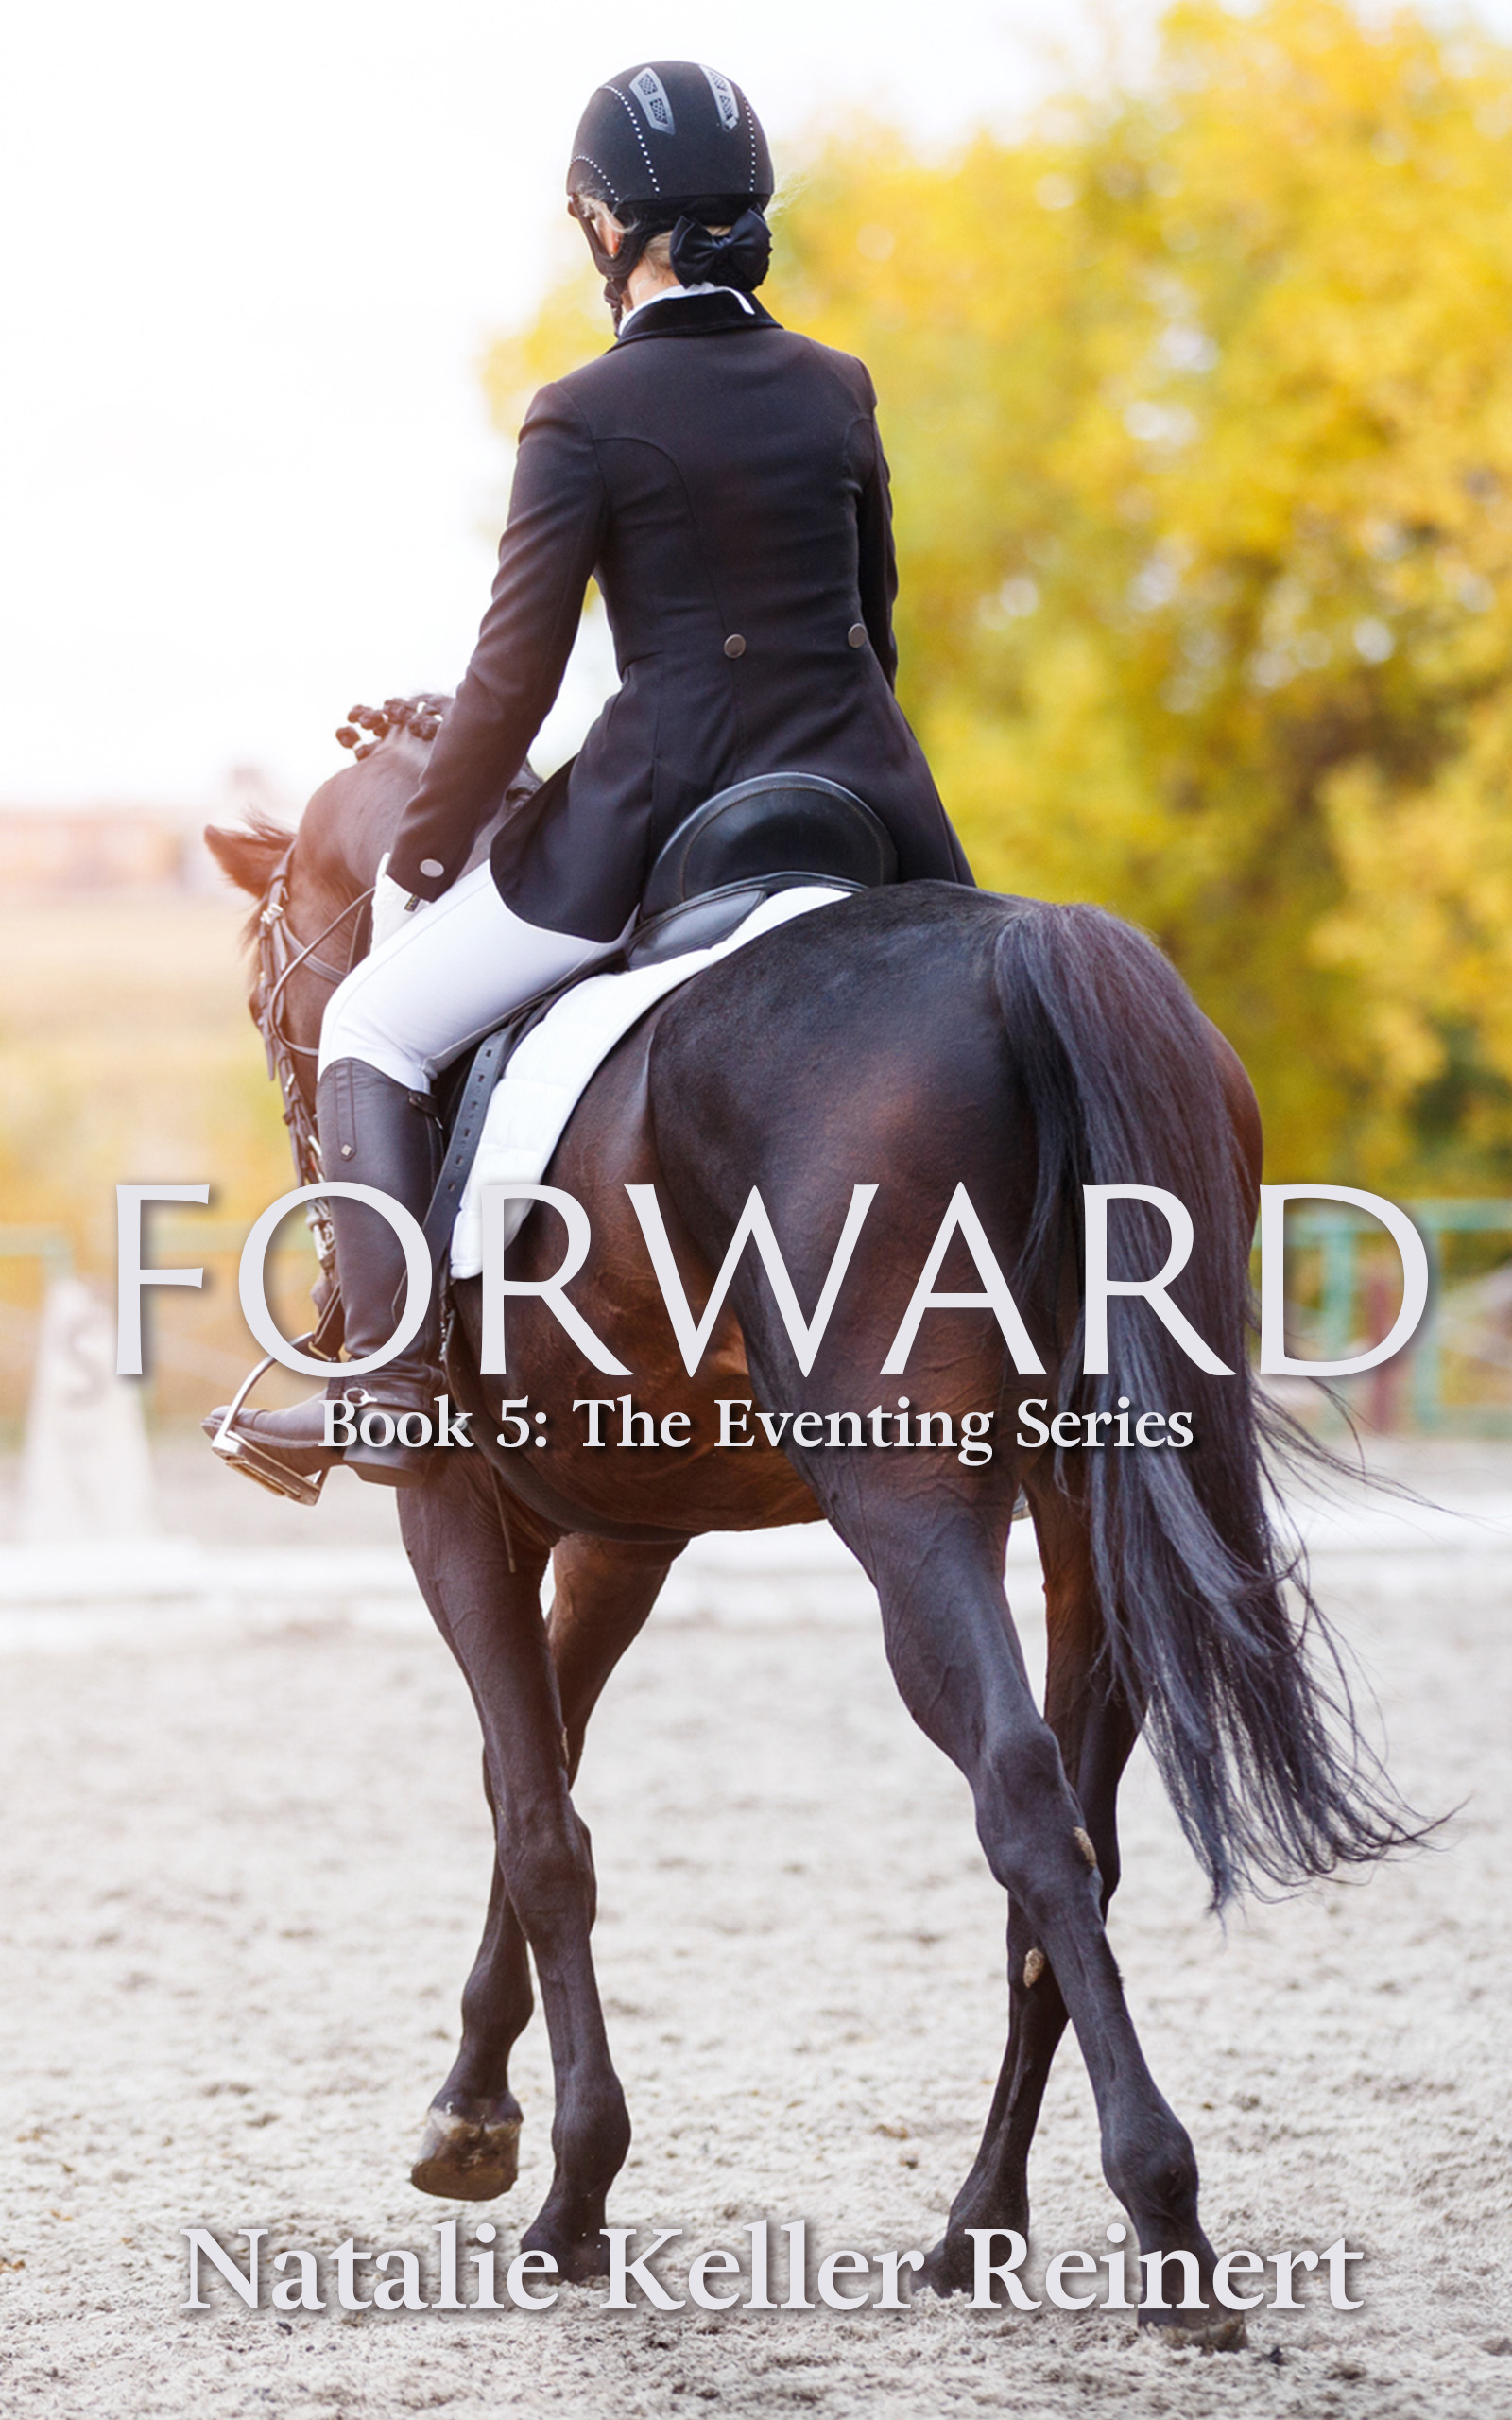 Forward: Book 5 of The Eventing Series